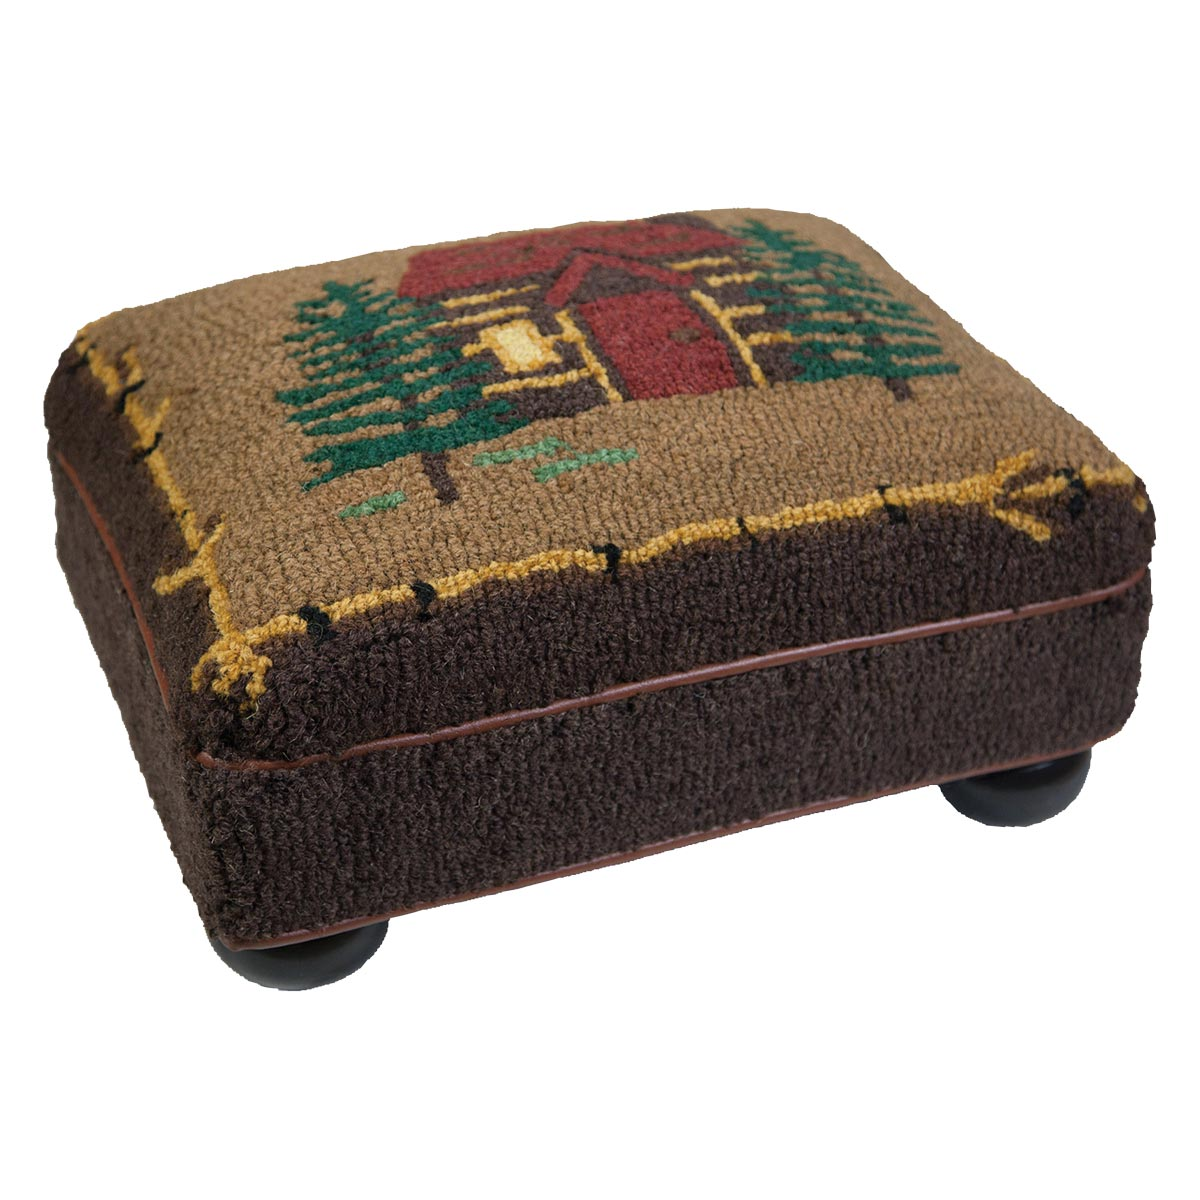 Black Forest Decor Cabin in the woods hooked top footstool